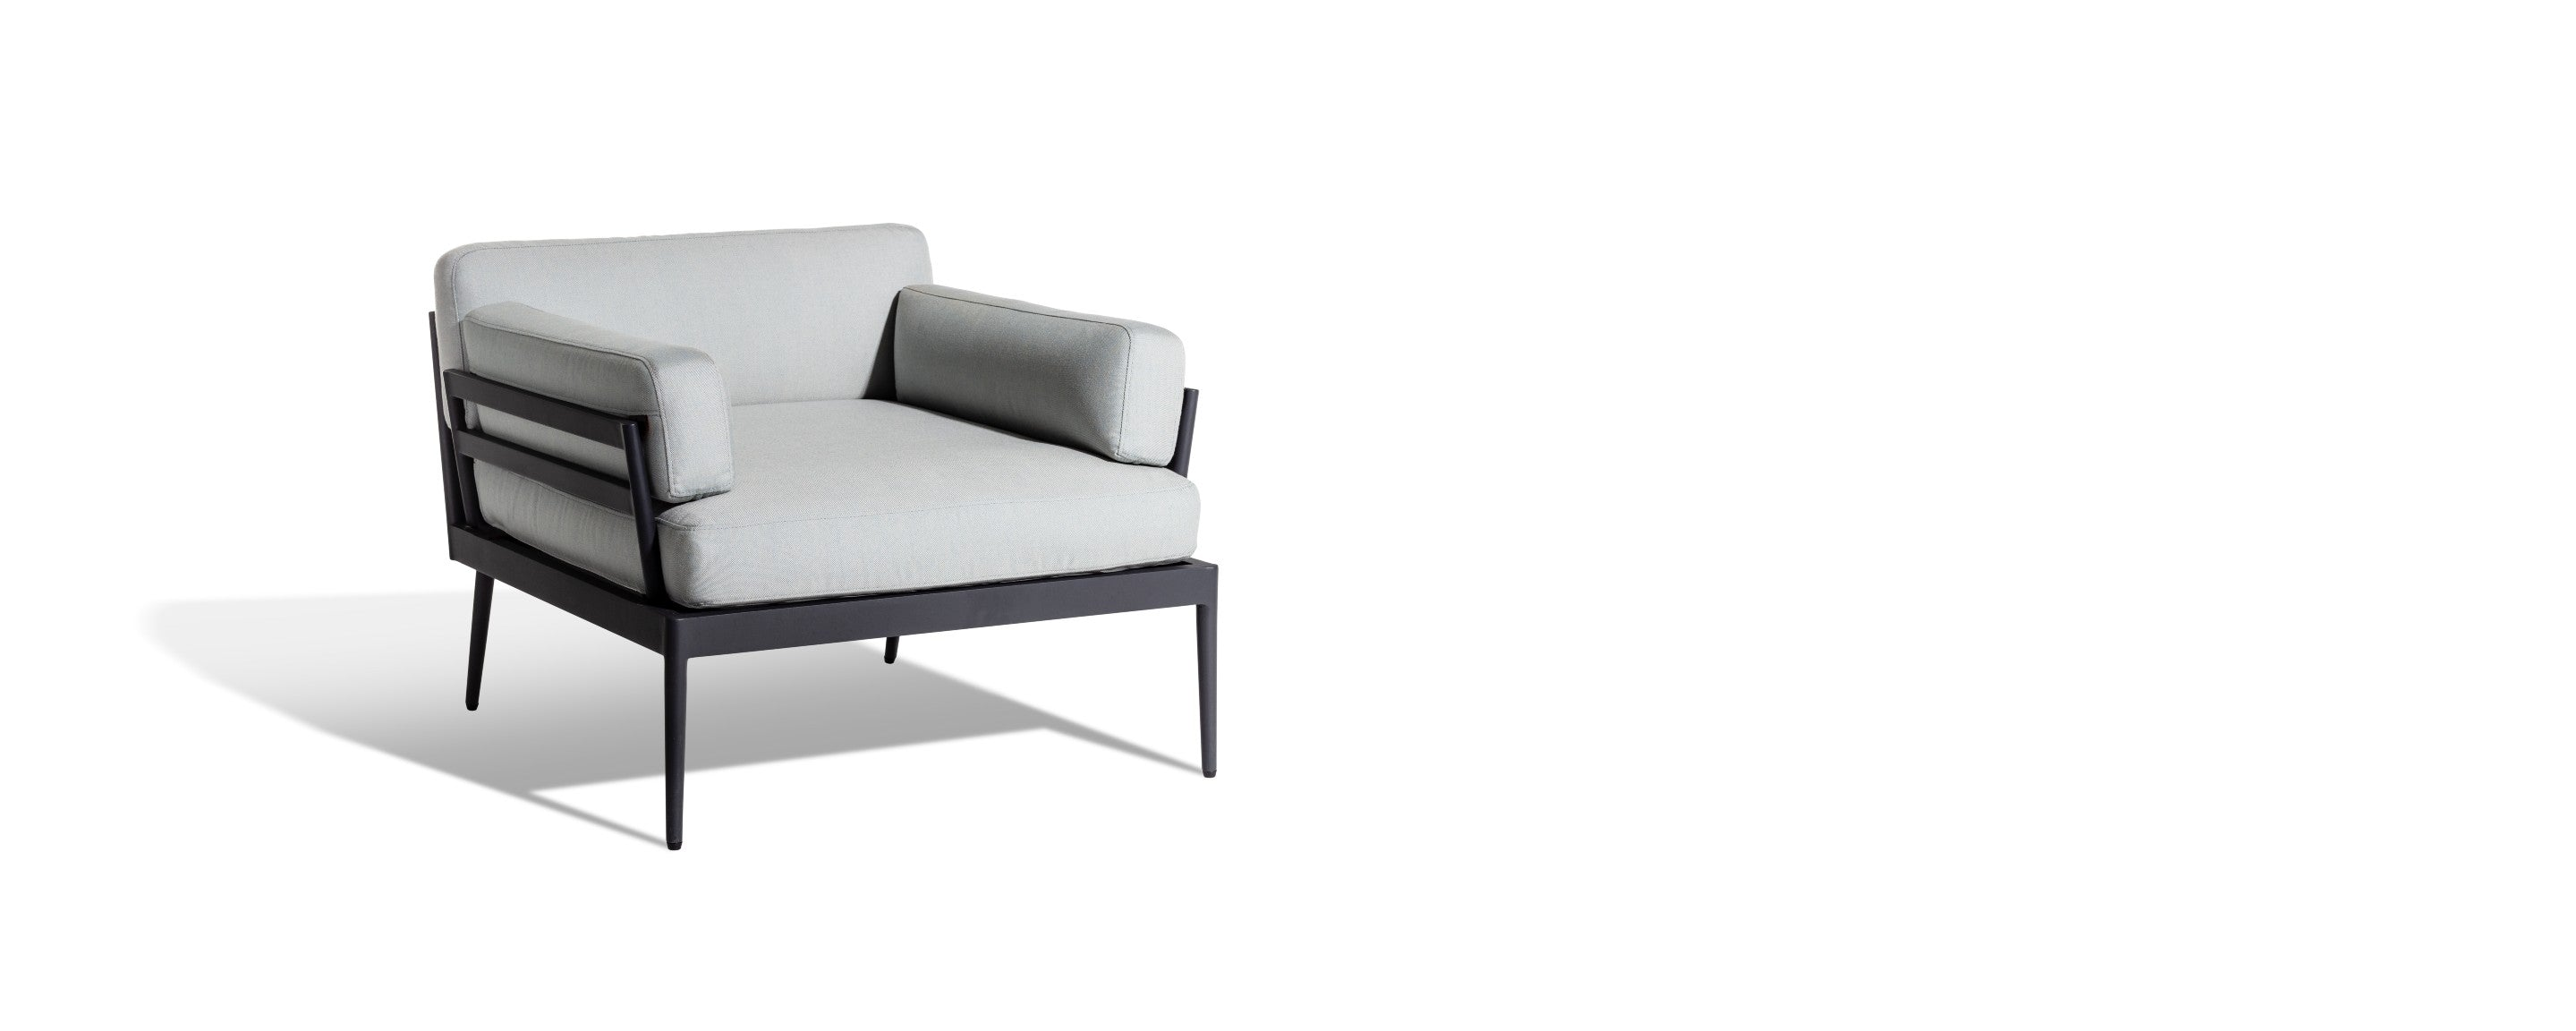 anholt lounge chair